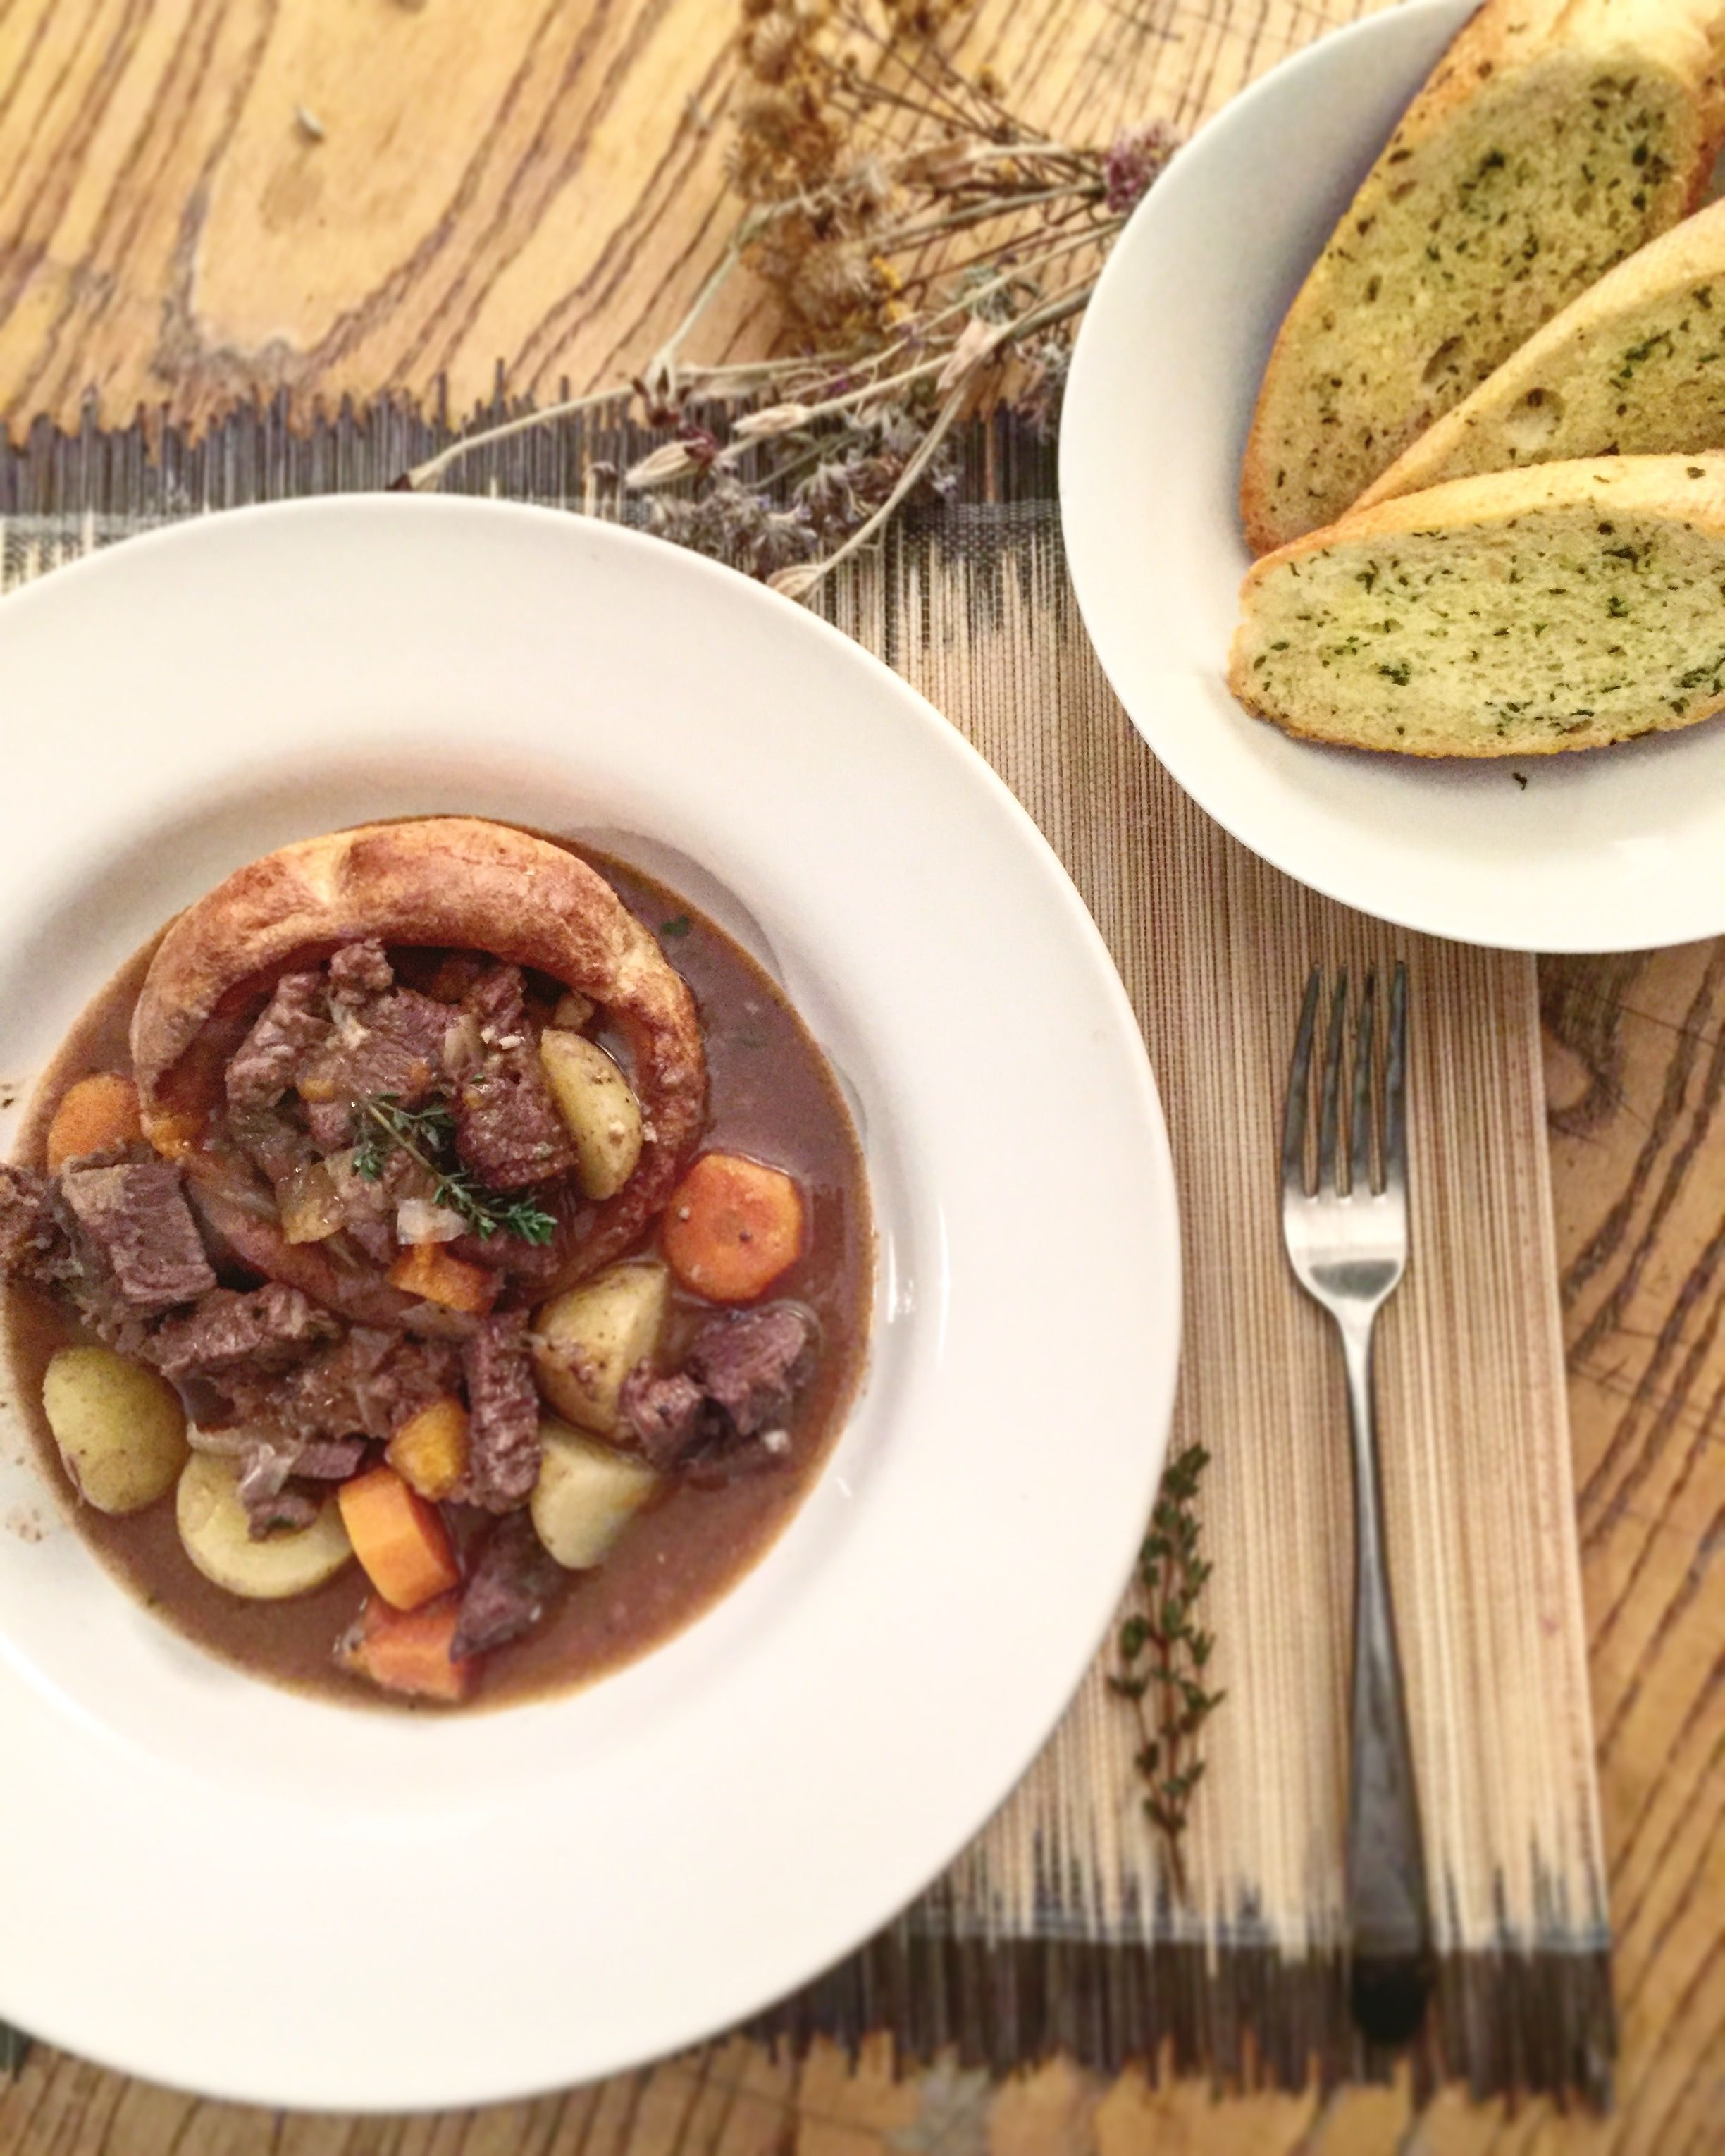 Home made winter beef and red wine stew with garlic bread